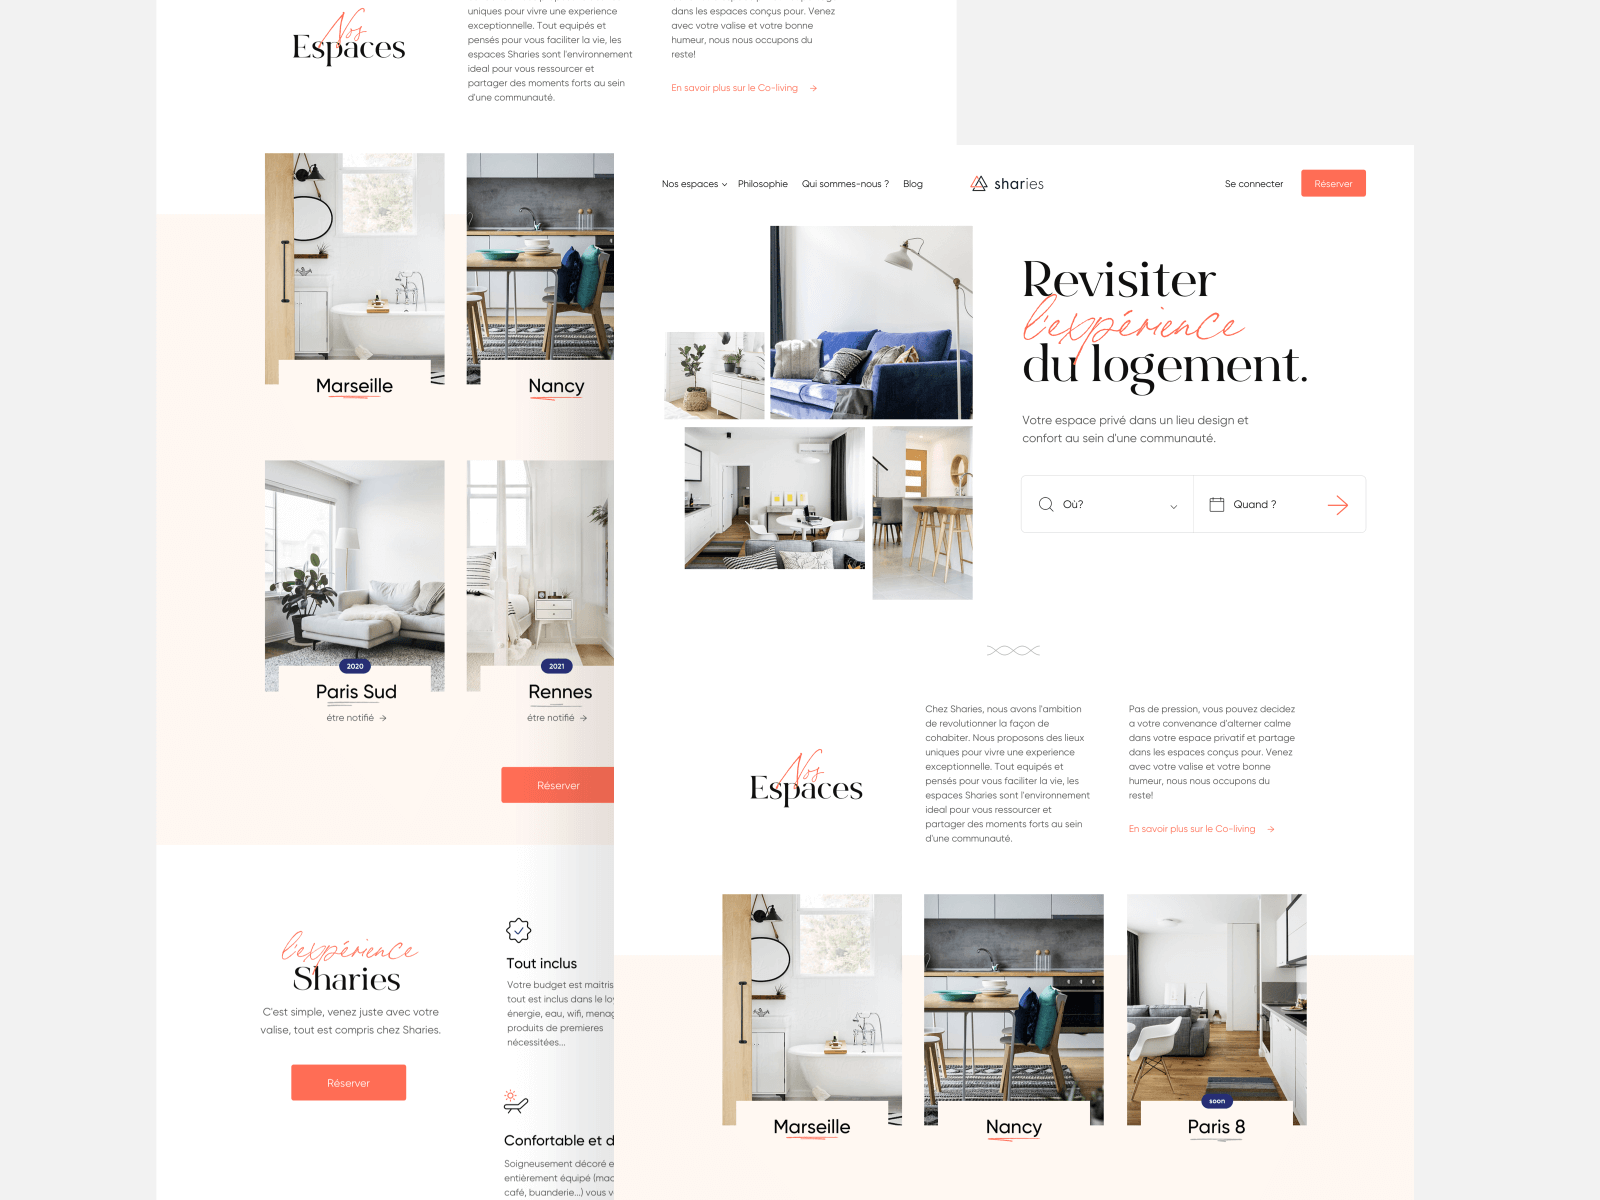 Landing page design for a sharing space company